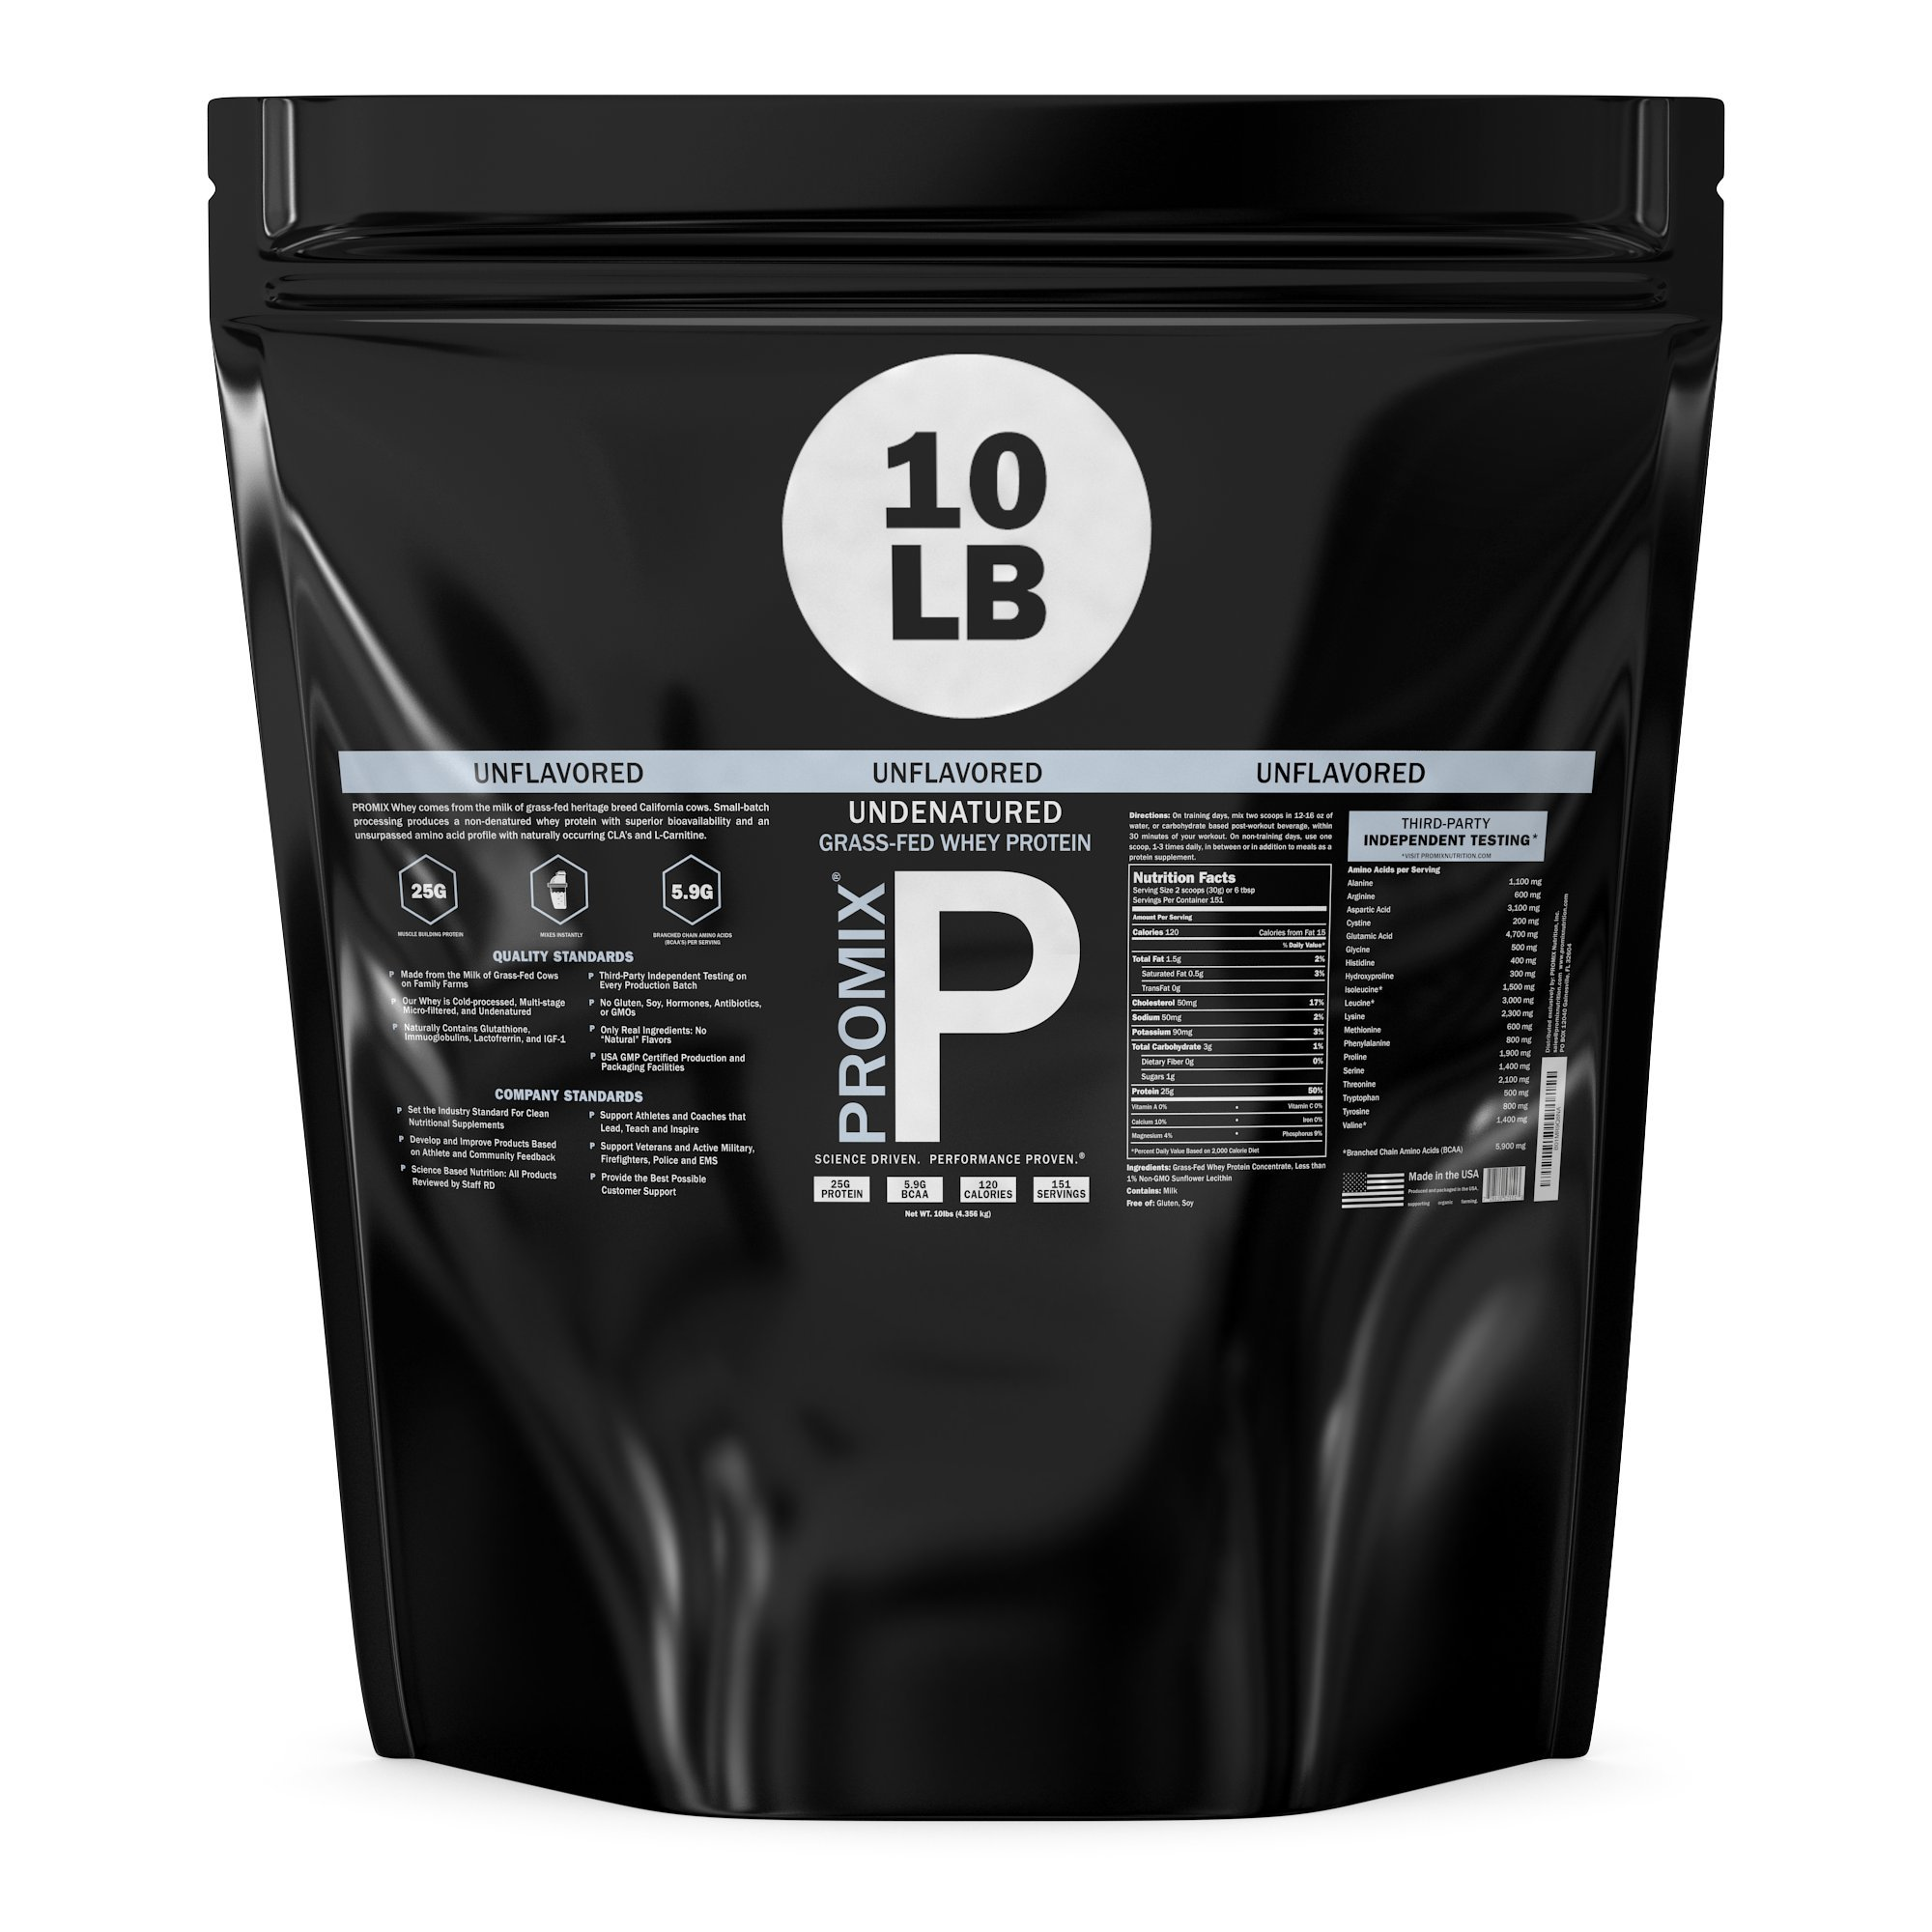 Performance Whey Protein Powder Concentrate - PROMIX Standard 100 Percent All Natural Grass Fed & Undenatured - Best for Optimum Fitness Nutrition Shakes & Energy Smoothie Bowls: Unflavored 10 lb Bulk